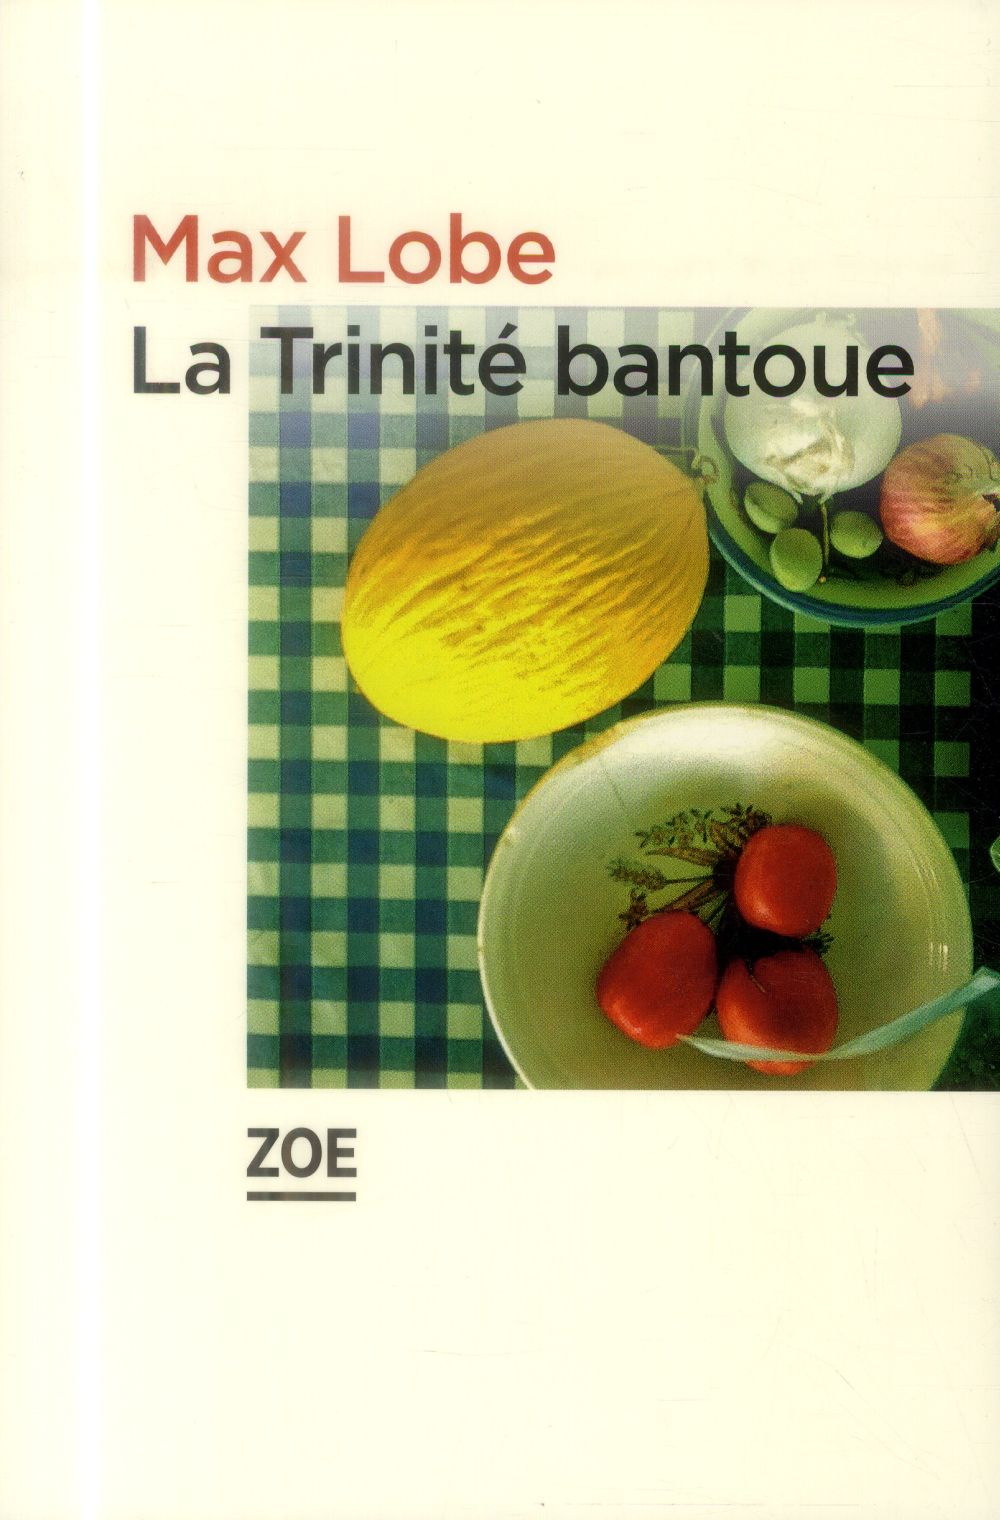 LA TRINITE BANTOUE